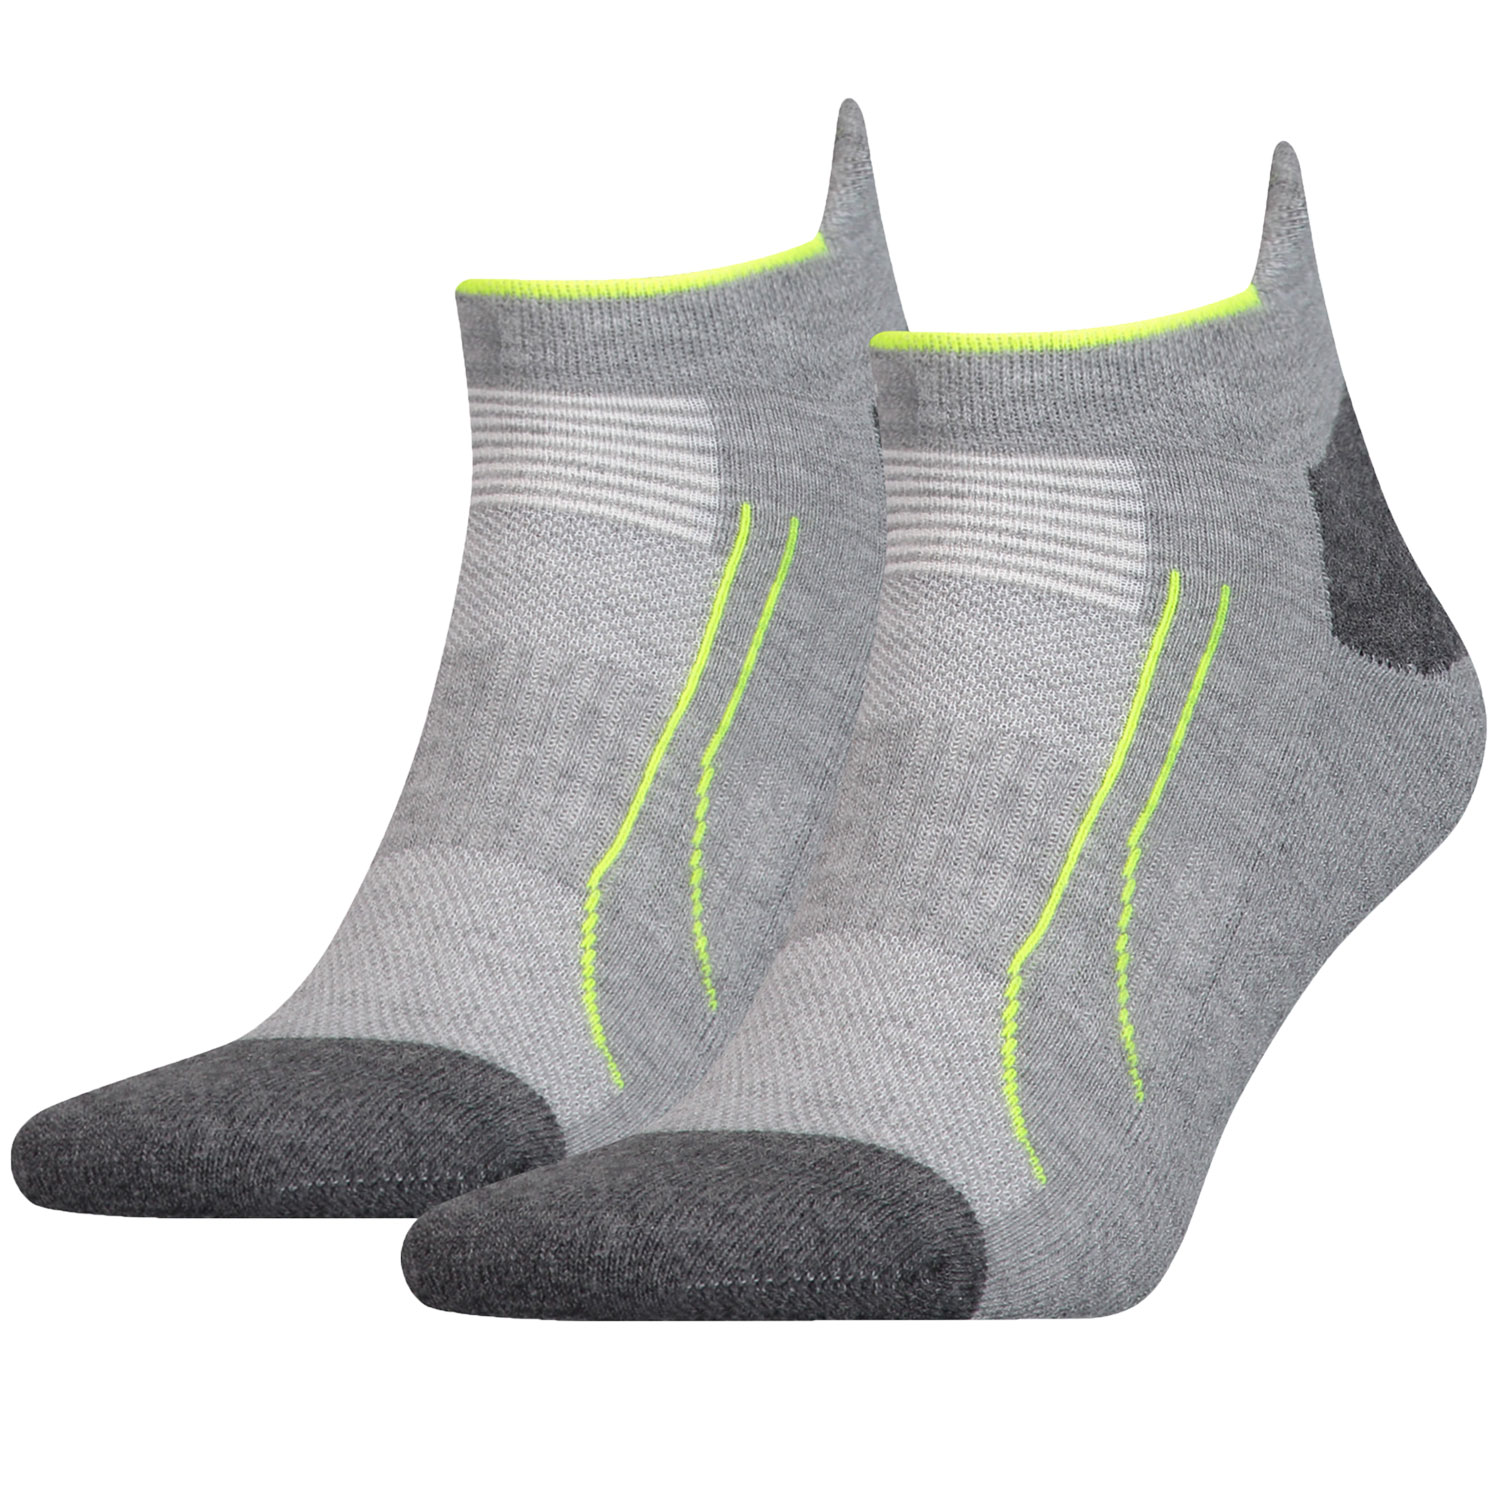 Puma Performance Train Sneaker 10 Paar Füßlinge  Sportsocken Allround Sports – Bild 4